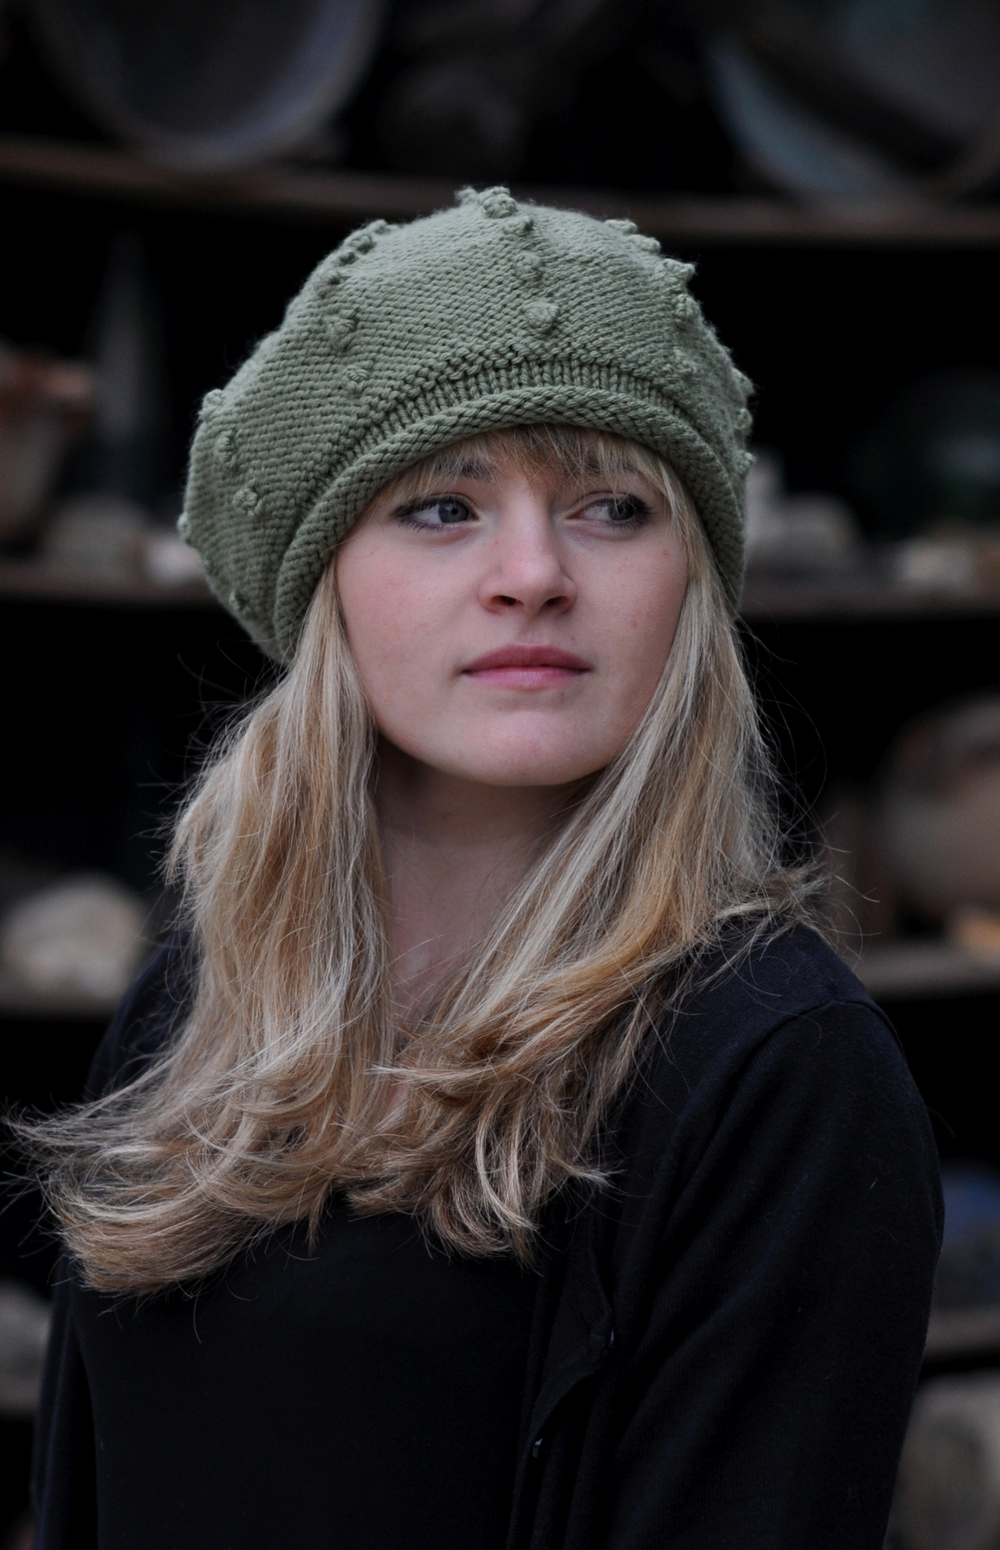 Bobble Beret knitting pattern